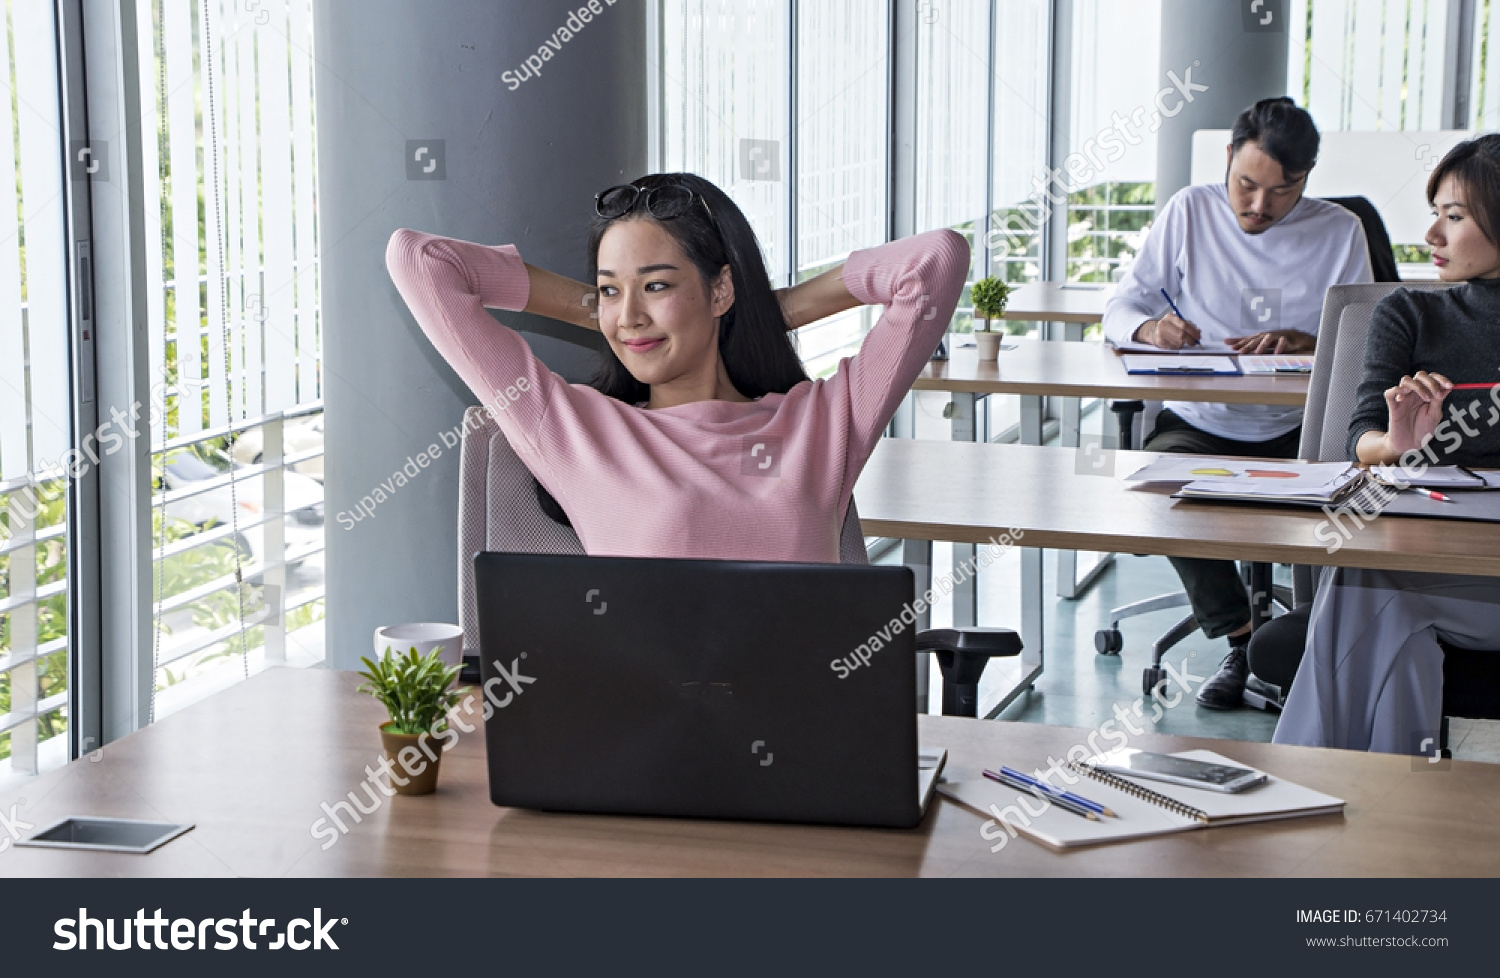 woman office furniture. Business Woman Relaxing Working At Office Desk Laid Back Resting On Chair With Hands Behind Head Furniture